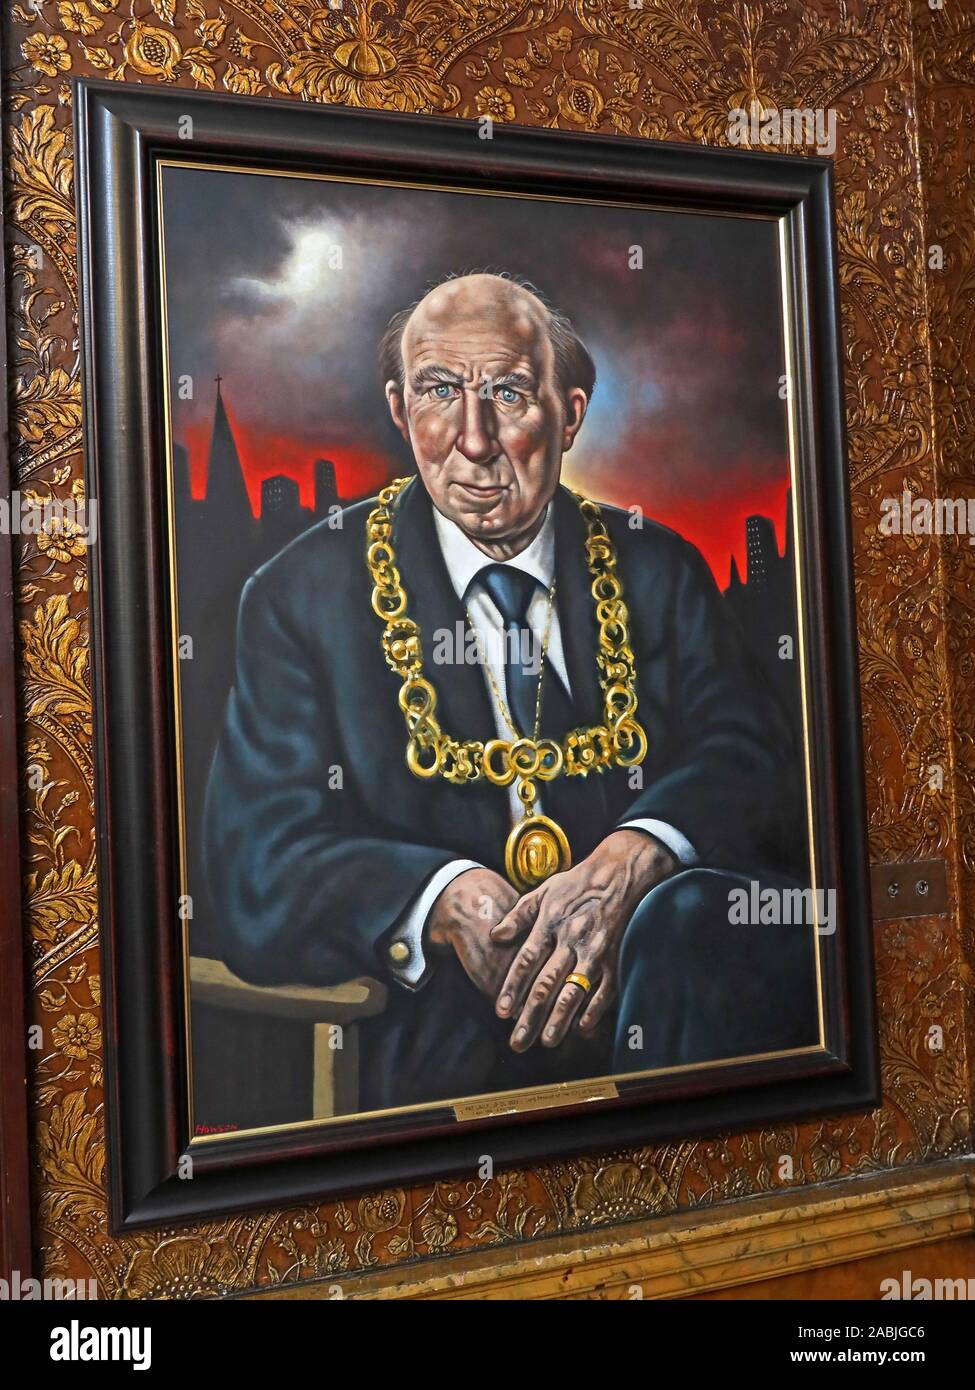 @HotpixUK,HotpixUK,GoTonySmith,UK,Glasgow,Scotland,City Centre,Strathclyde,G2,Lord Provost,portraits,Portraits,Gallery,Glasgow City Chambers,George Sq,George Square,painting,art,P Lally,Pat,Lally,ceremonial chain